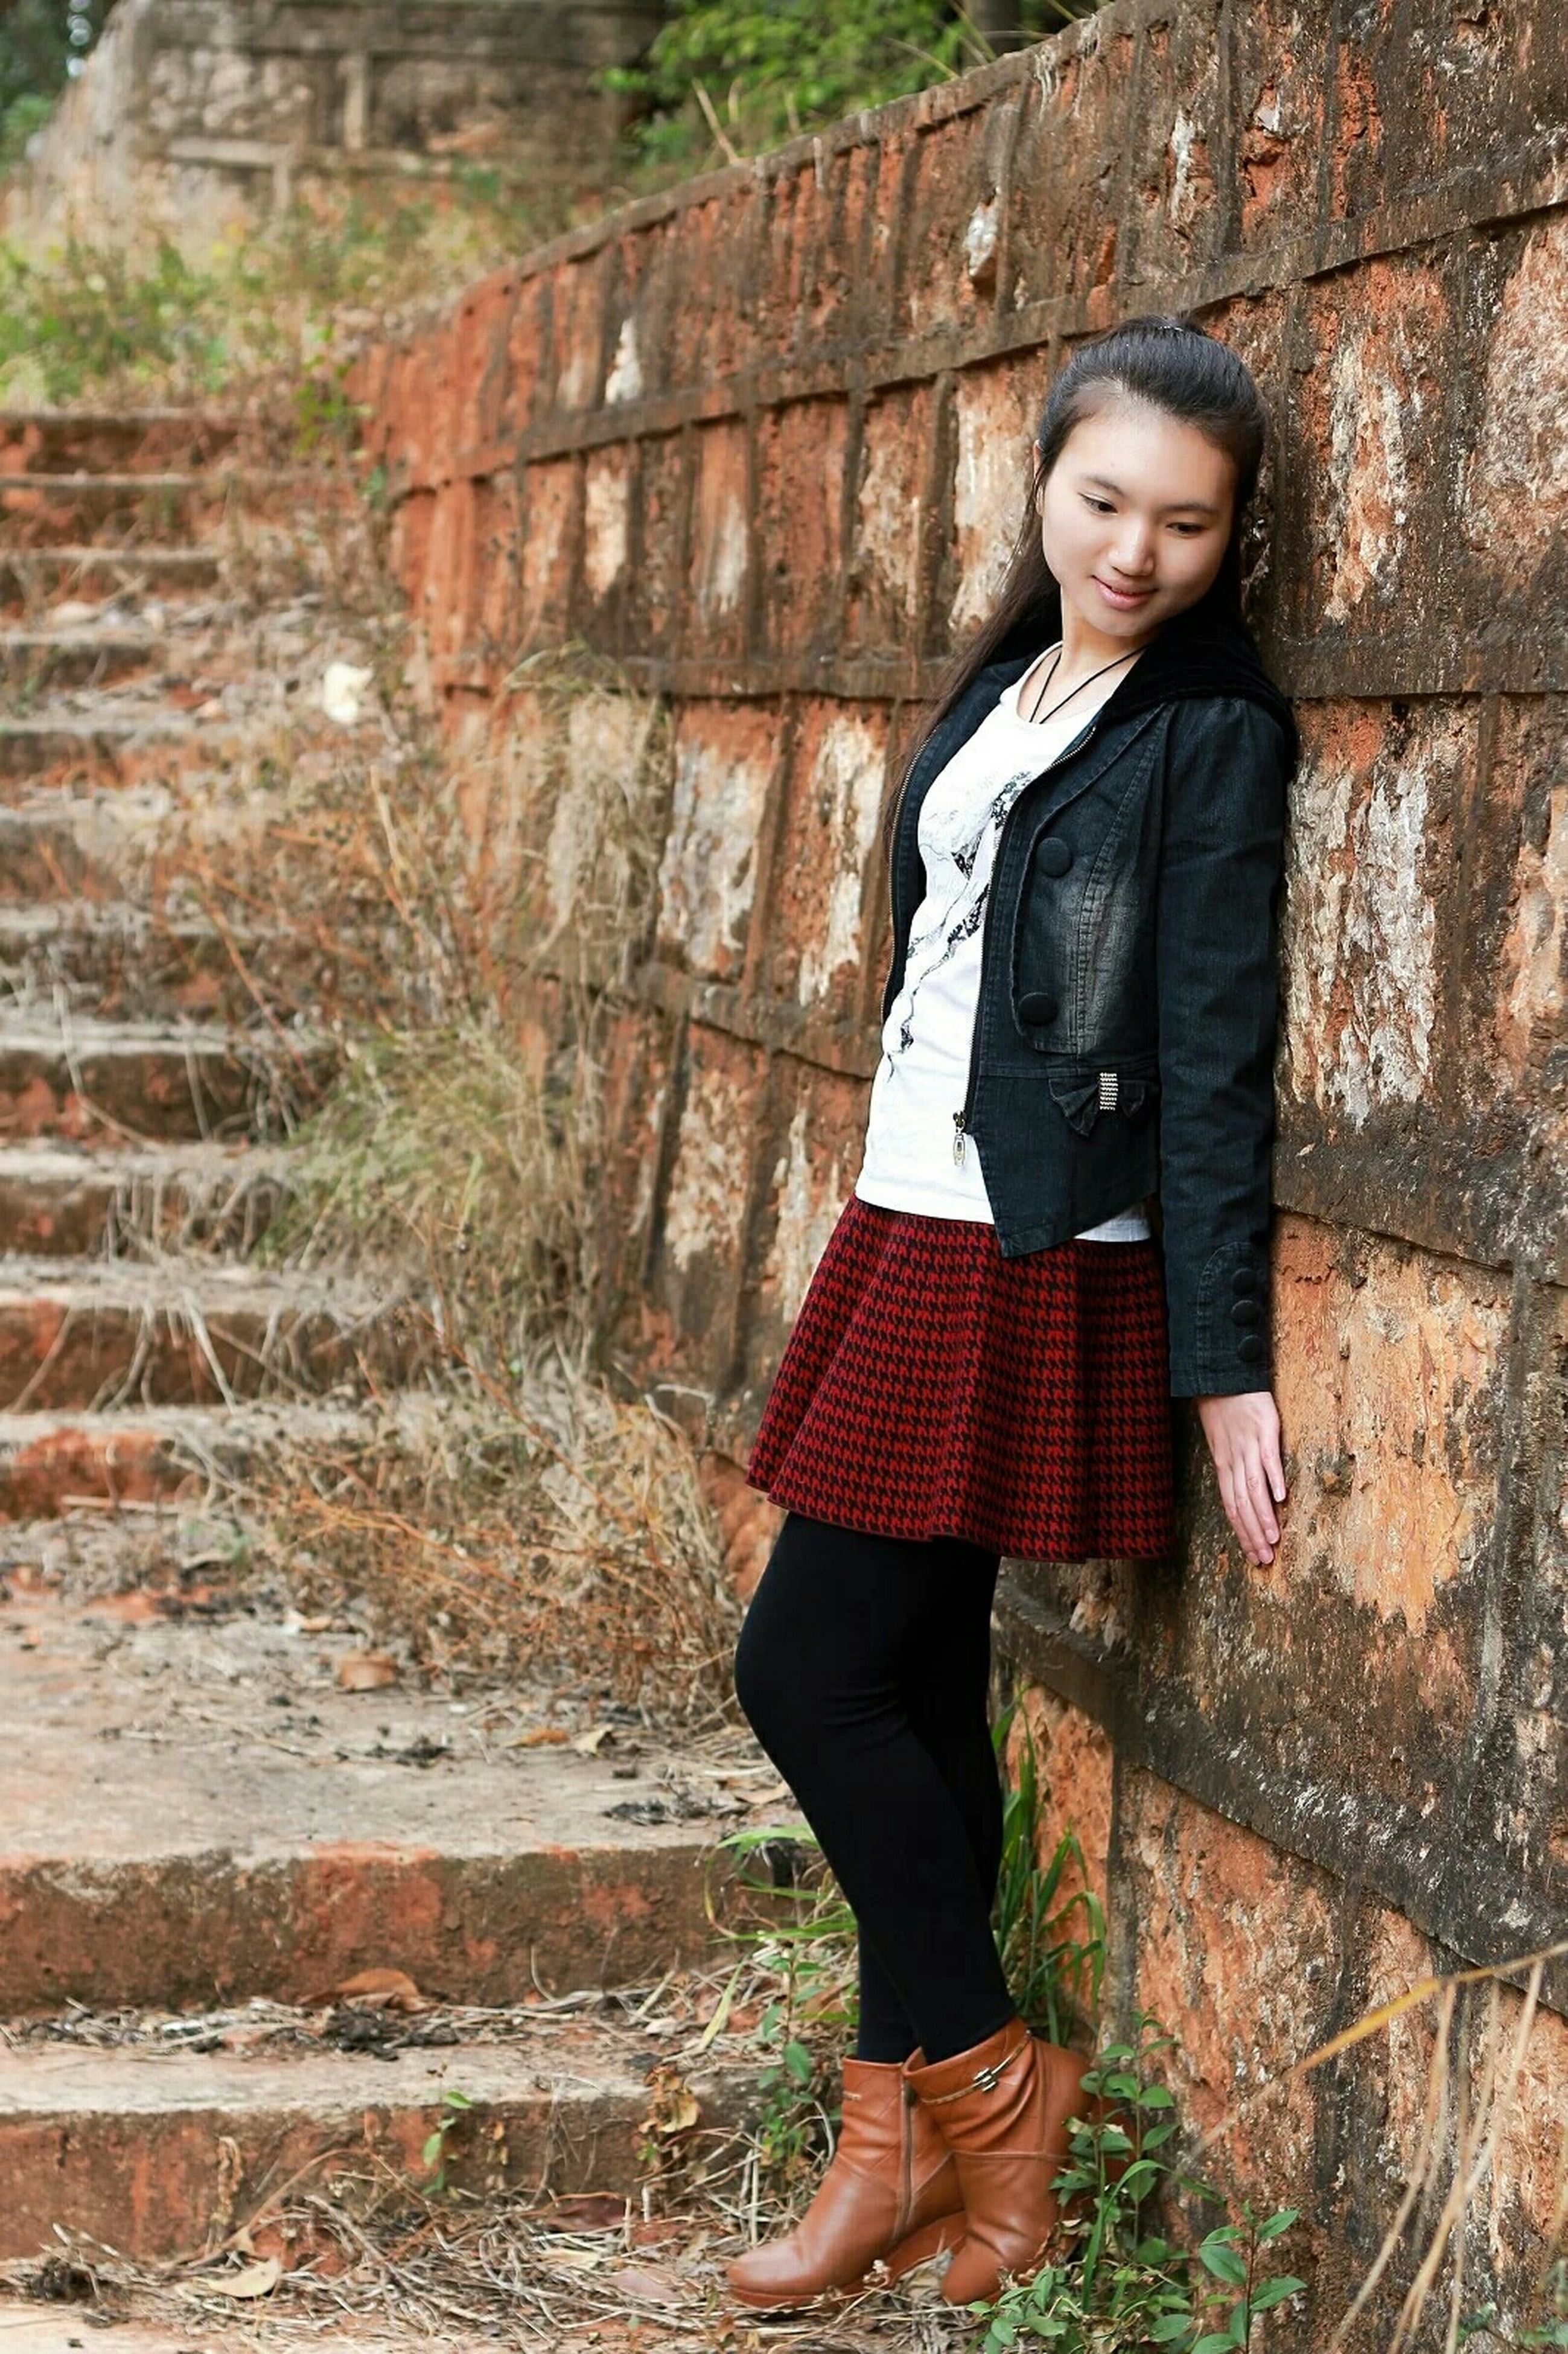 casual clothing, young adult, standing, architecture, built structure, building exterior, lifestyles, person, front view, young women, portrait, looking at camera, brick wall, full length, wall - building feature, hands in pockets, three quarter length, leisure activity